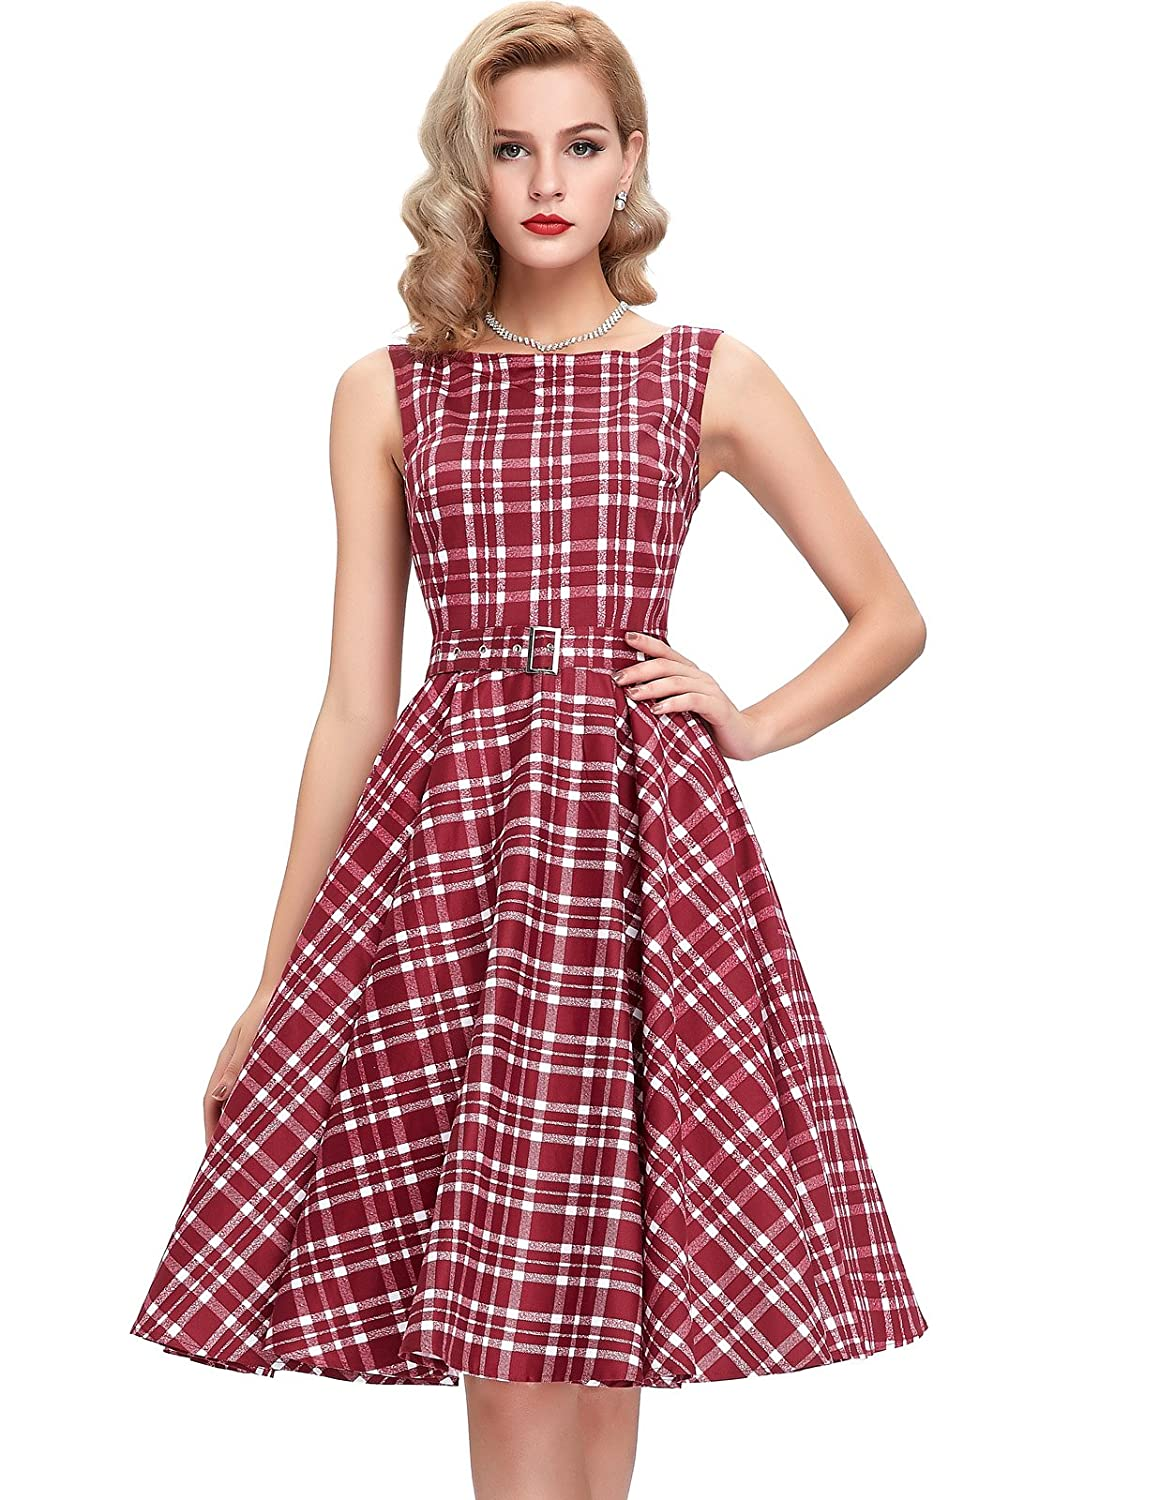 Vintage Polka Dot Dresses – Ditsy 50s Prints 50s Vintage Swing Dress BP0002 (Multi-Colored) $26.37 AT vintagedancer.com